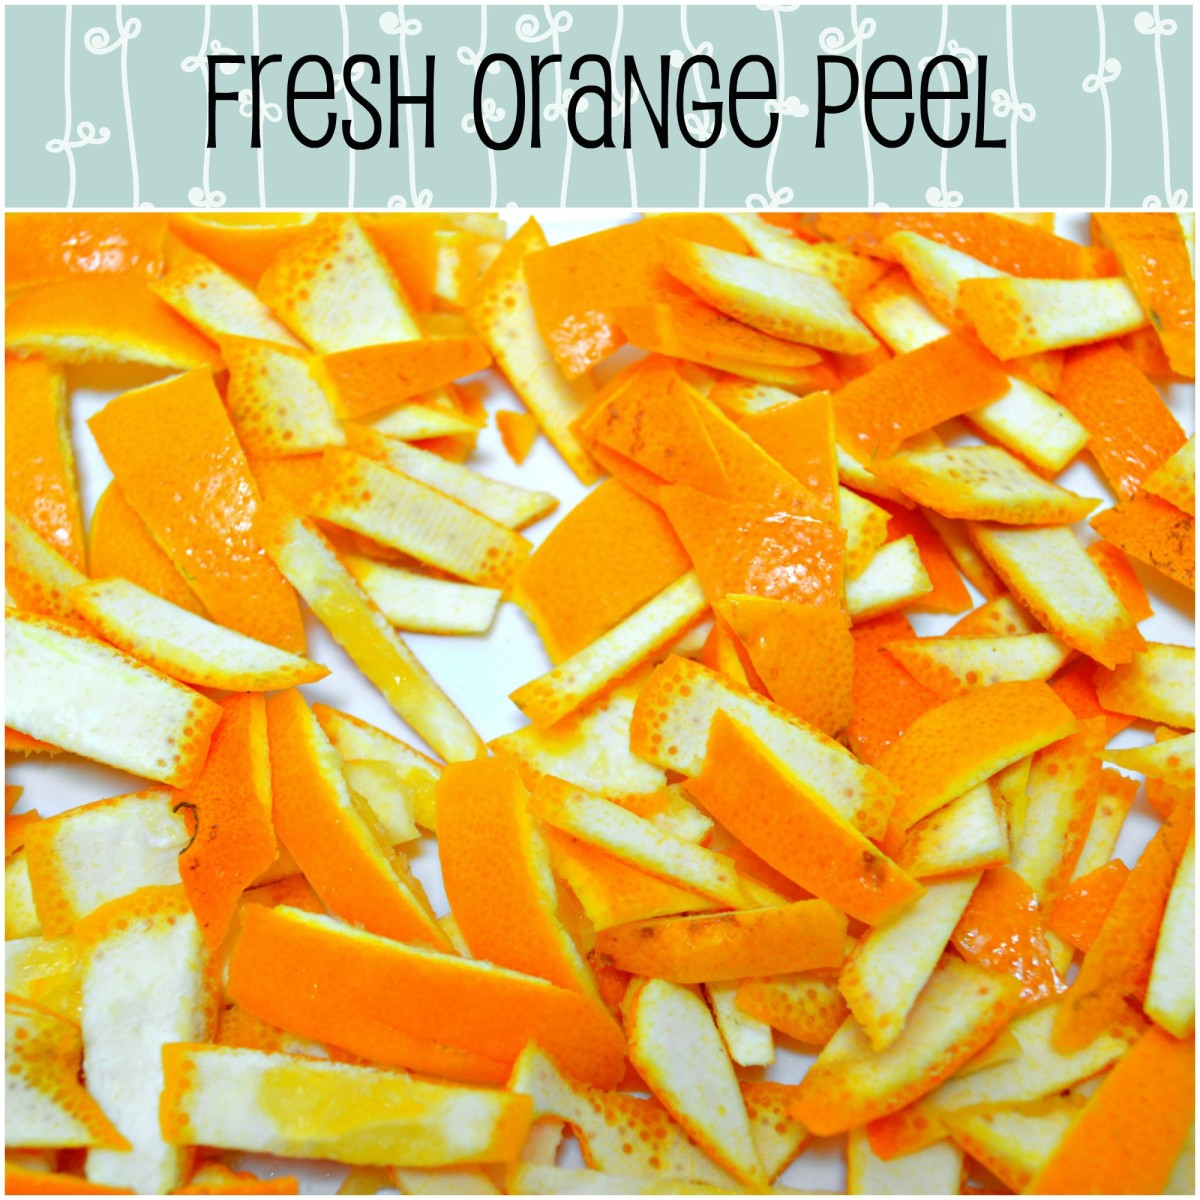 Look at how glossy and fresh the orange peels are! Mmmm...chopping them up releases all the heavenly citrusy aroma!